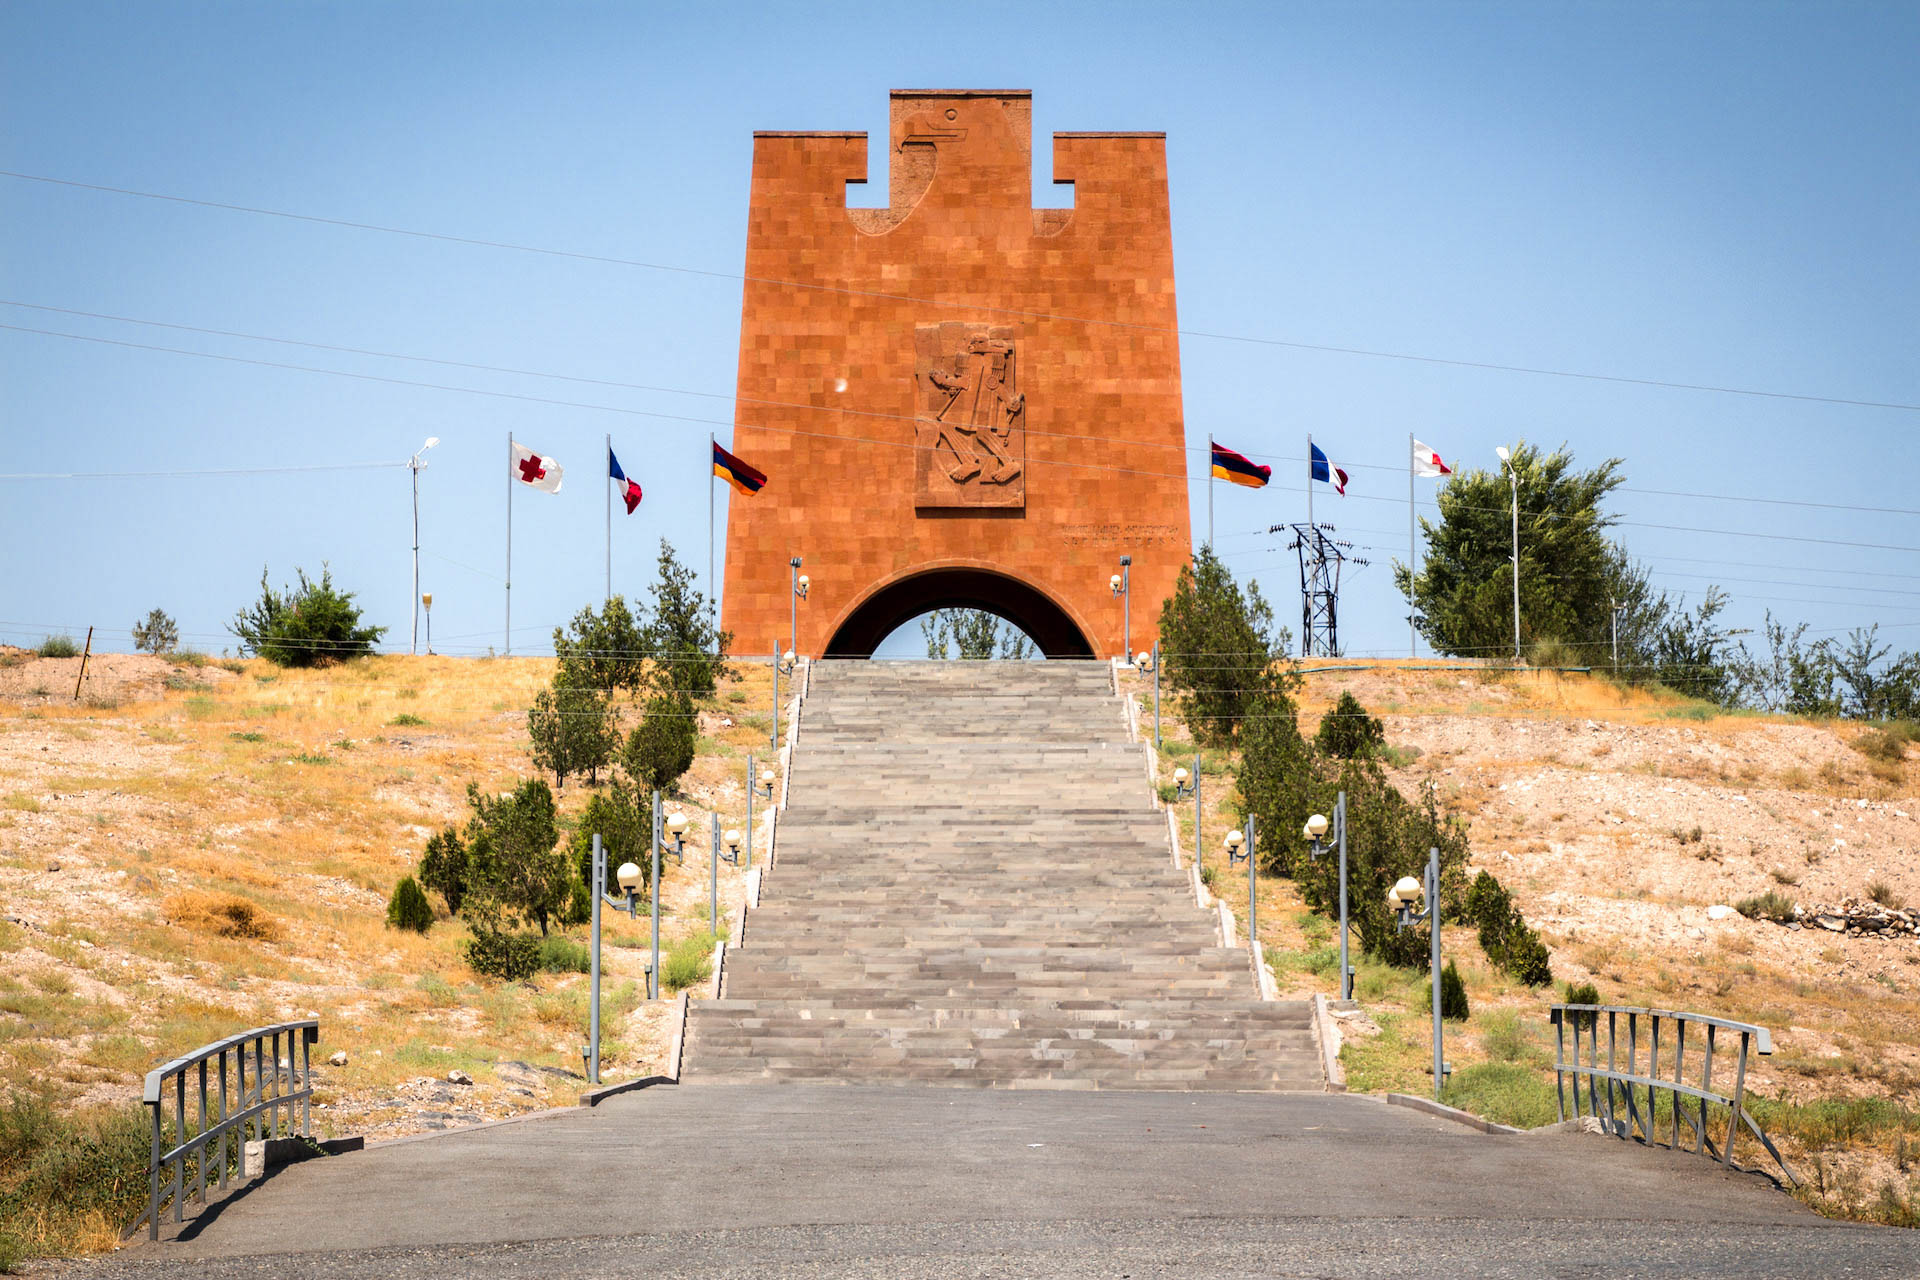 Monument to the Heroic Battle of Musa Dagh - Monumentalism